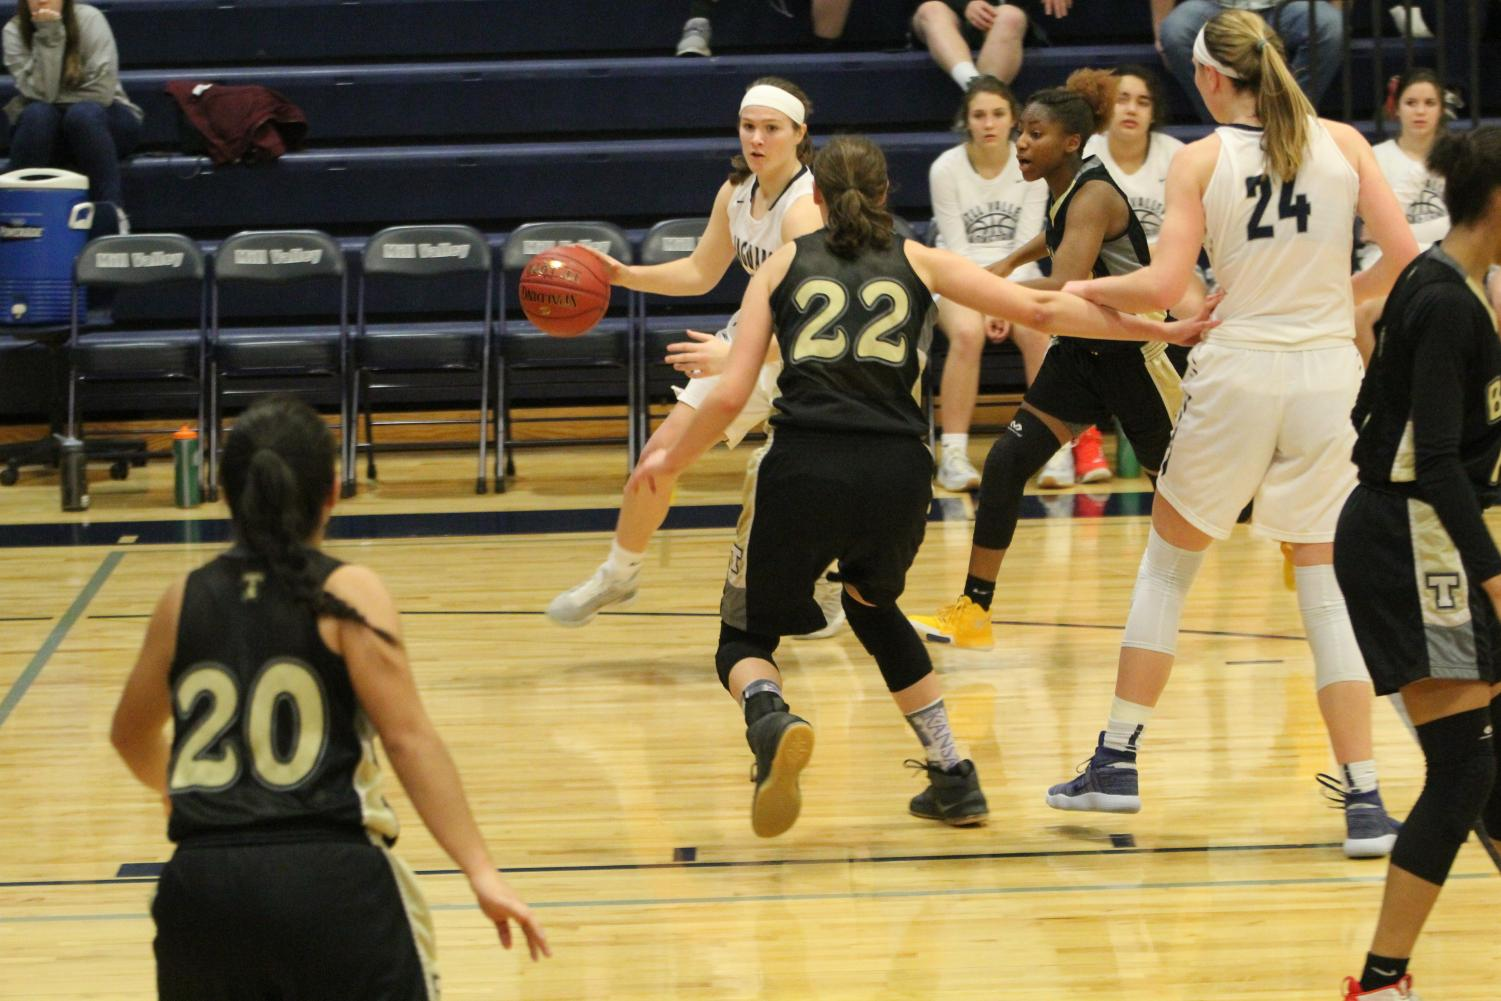 Dribbling+around+her+opponent%2C+junior+Claire+Kaifes+gets+ready+to+pass.+